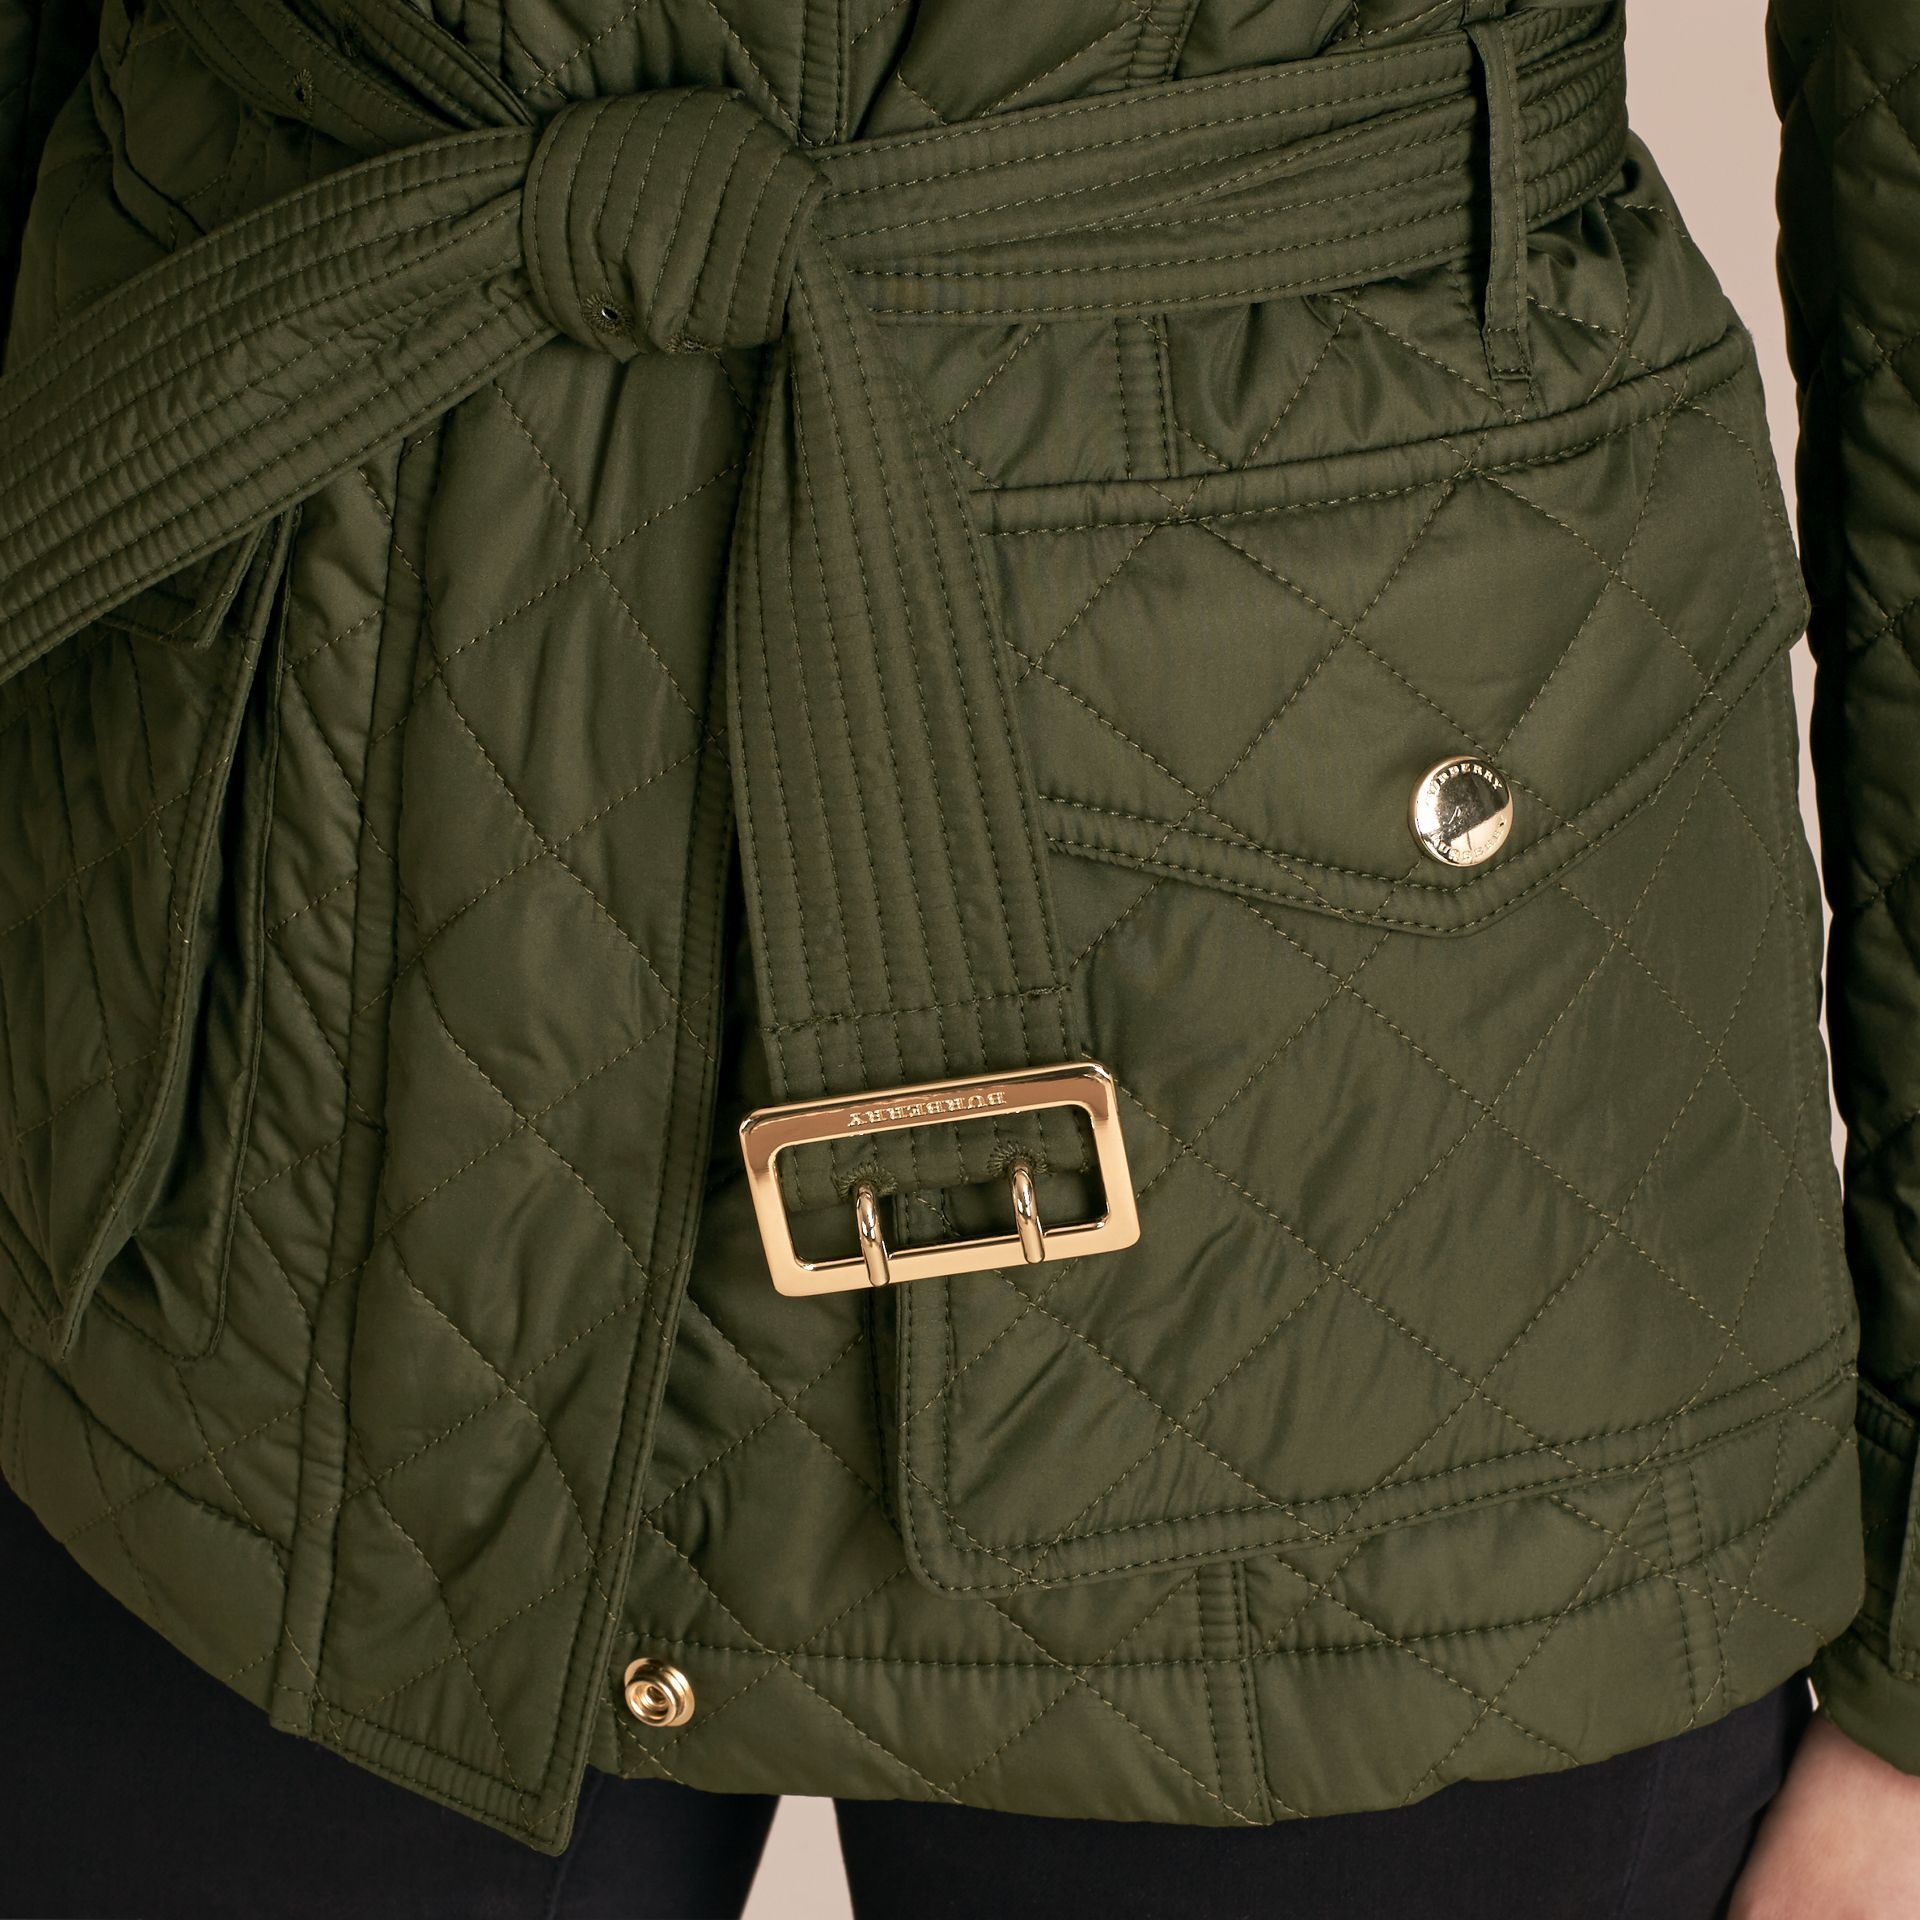 Buckle Detail Technical Field Jacket in Military Green - gallery image 6